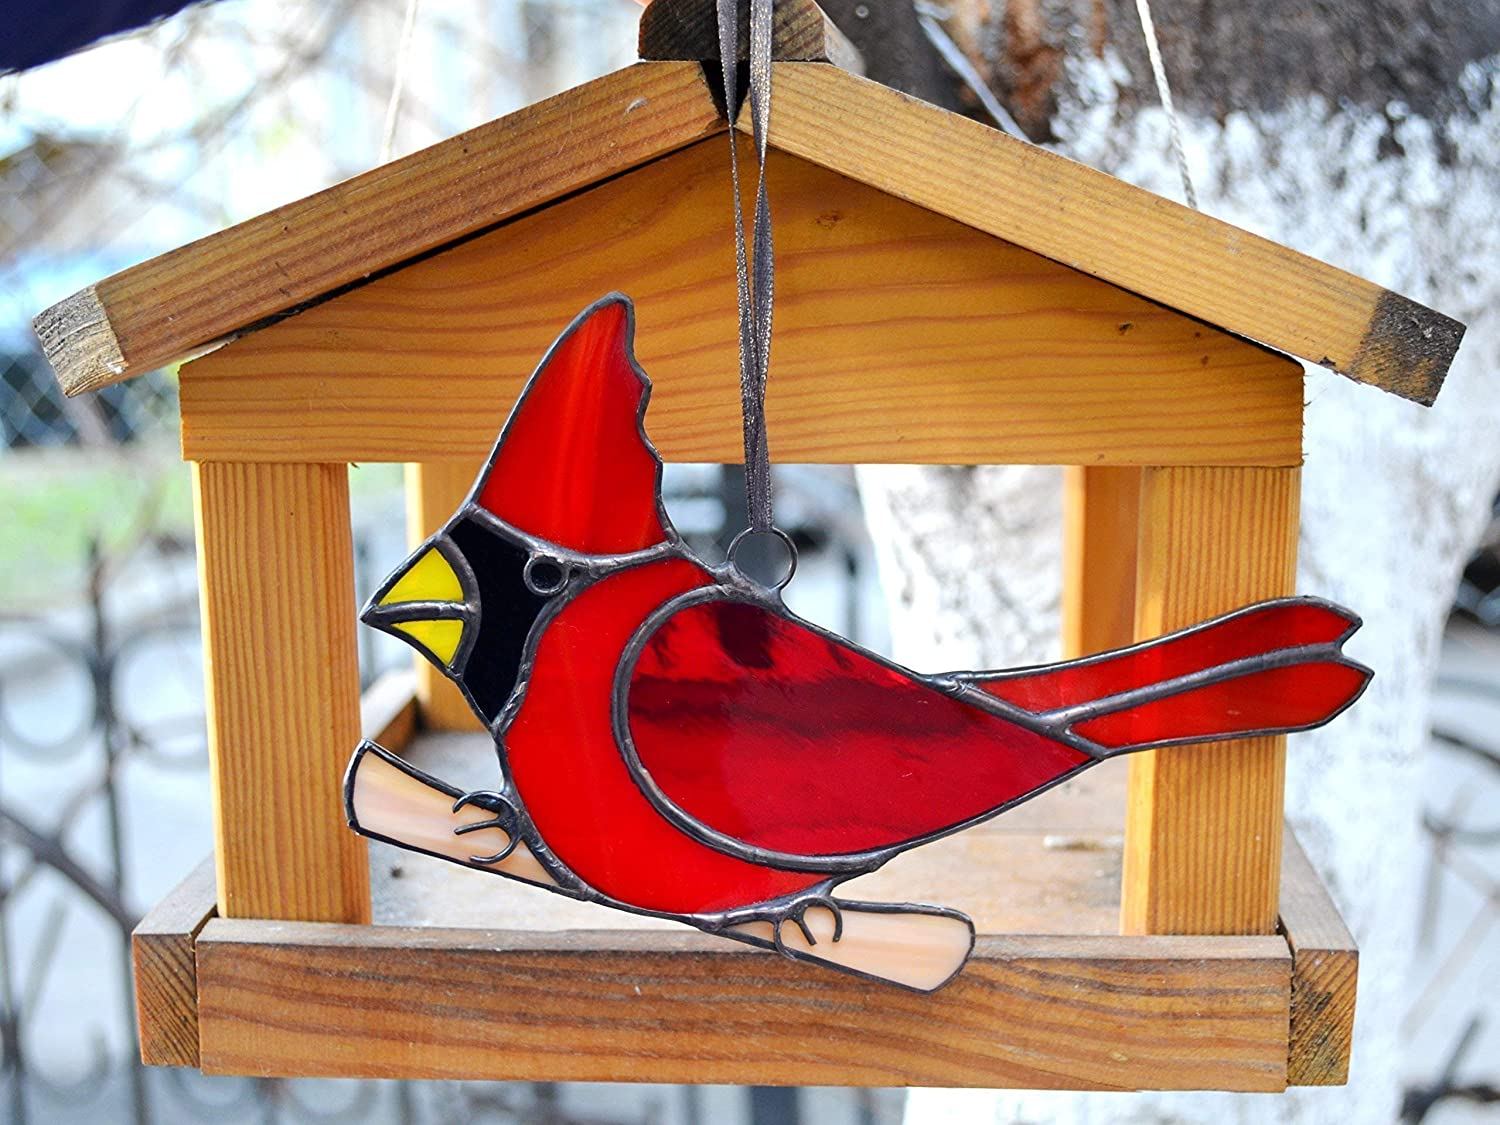 Stained Glass Red Cardinal Perched on Branch Suncatcher for Window Hanging or Bird Theme Wall Decor